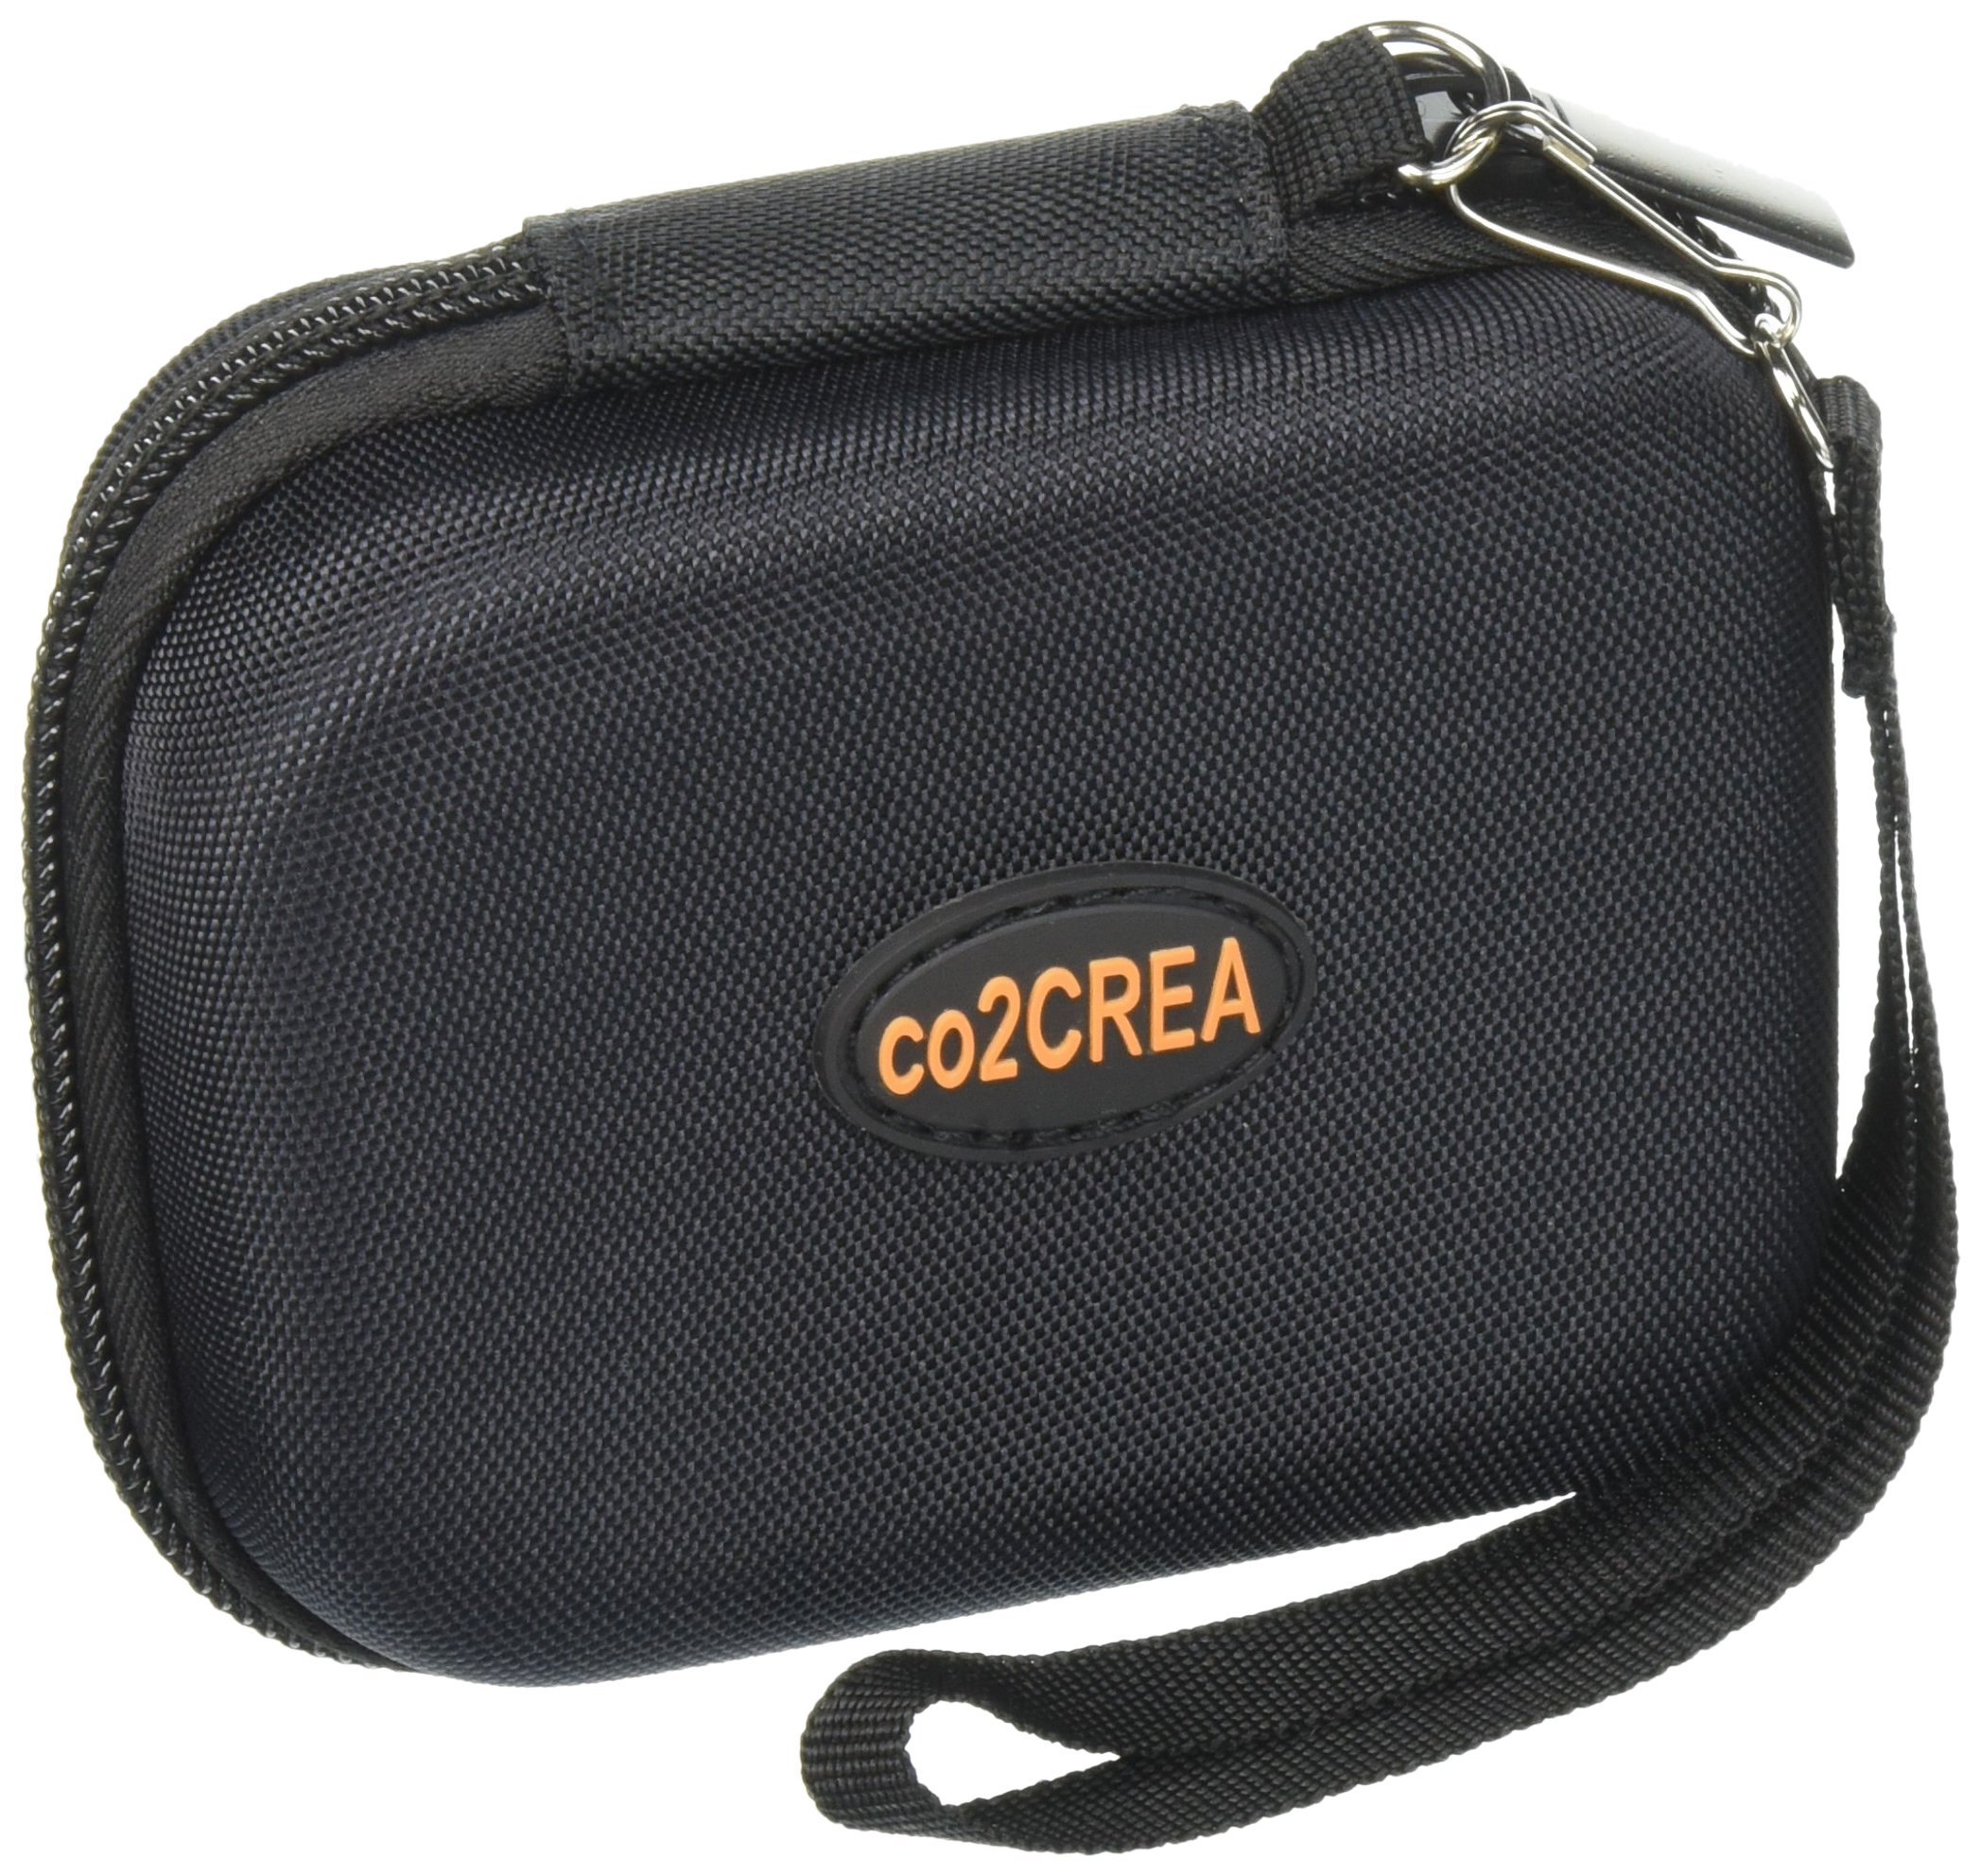 co2CREA Carrying Travel Case Bag for Omron BP652 BP654 7 Series Wrist Blood Pressure Monitor